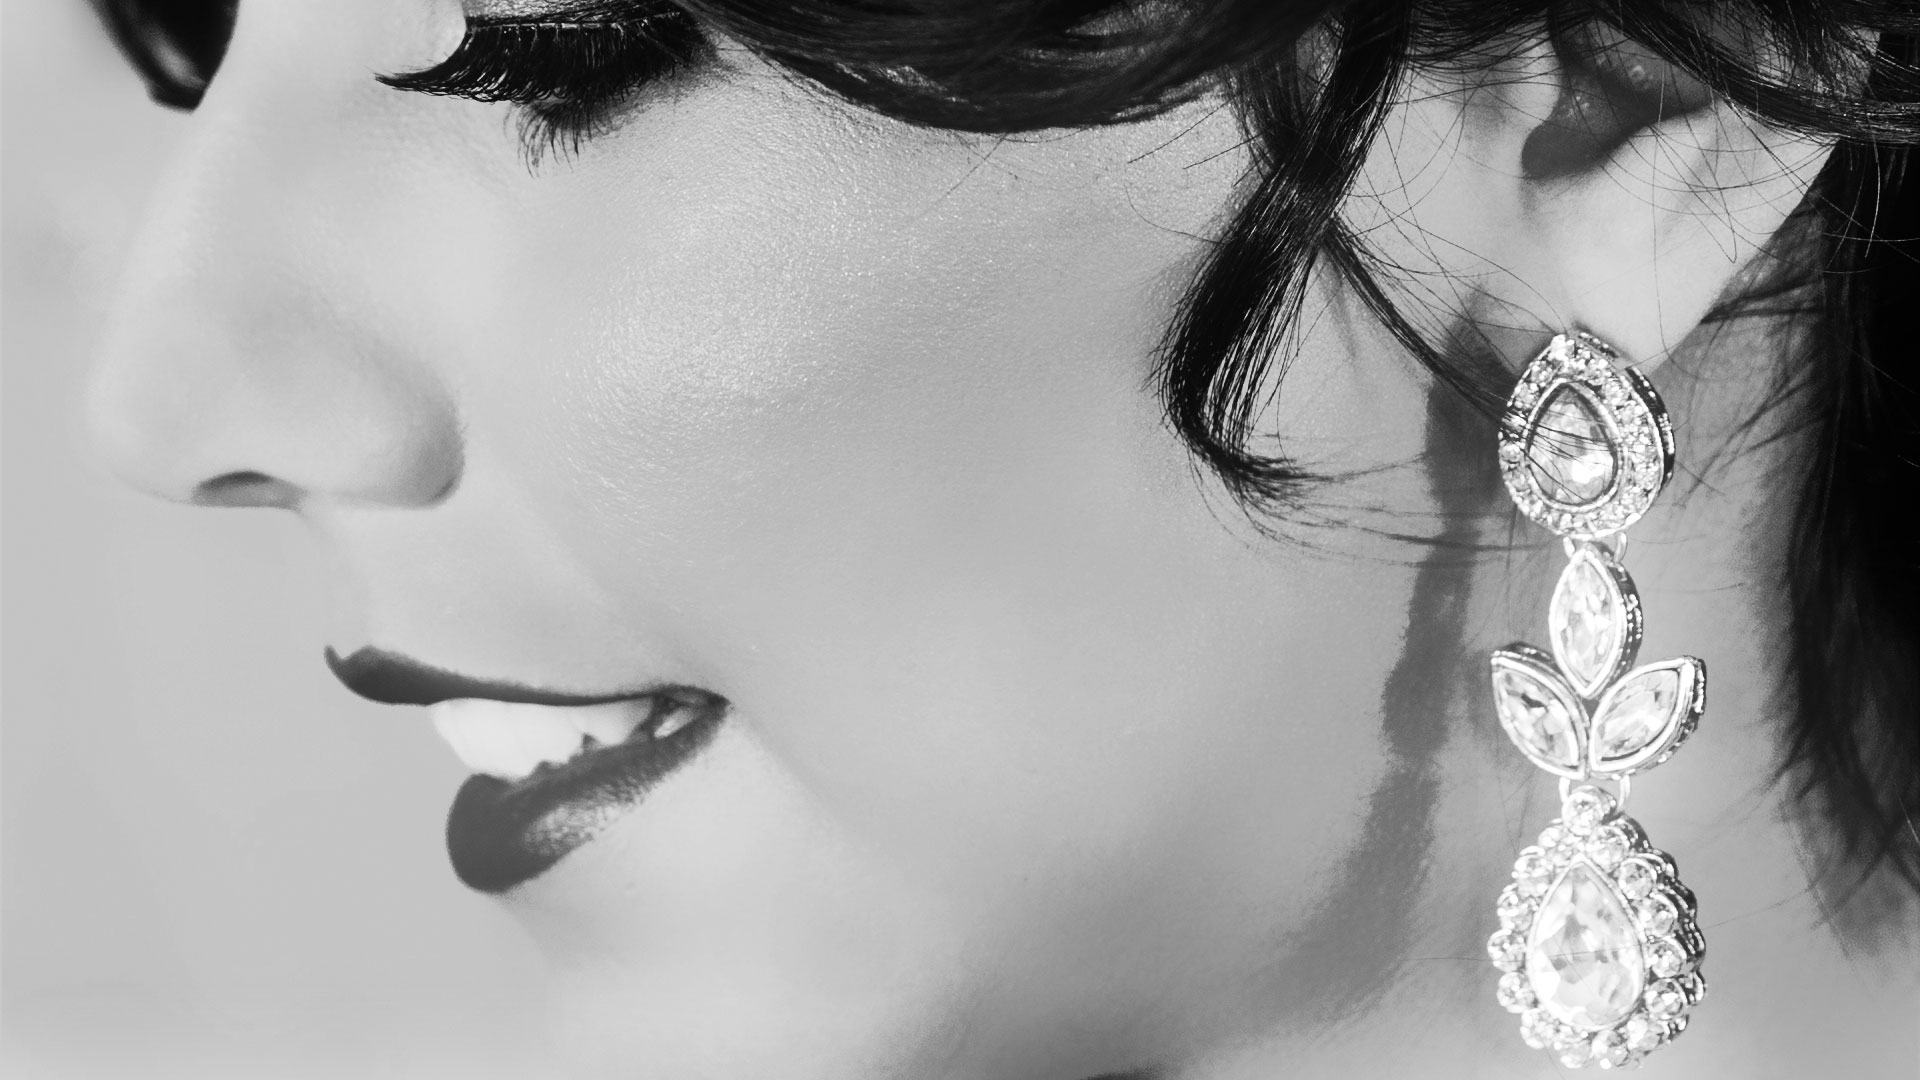 epic_sky_pictures_eshoot_ocean_earings_love_artistic_toronto_canada_black_and_white_sexy_photography_brampton_ontario_epicskypictures_facebook